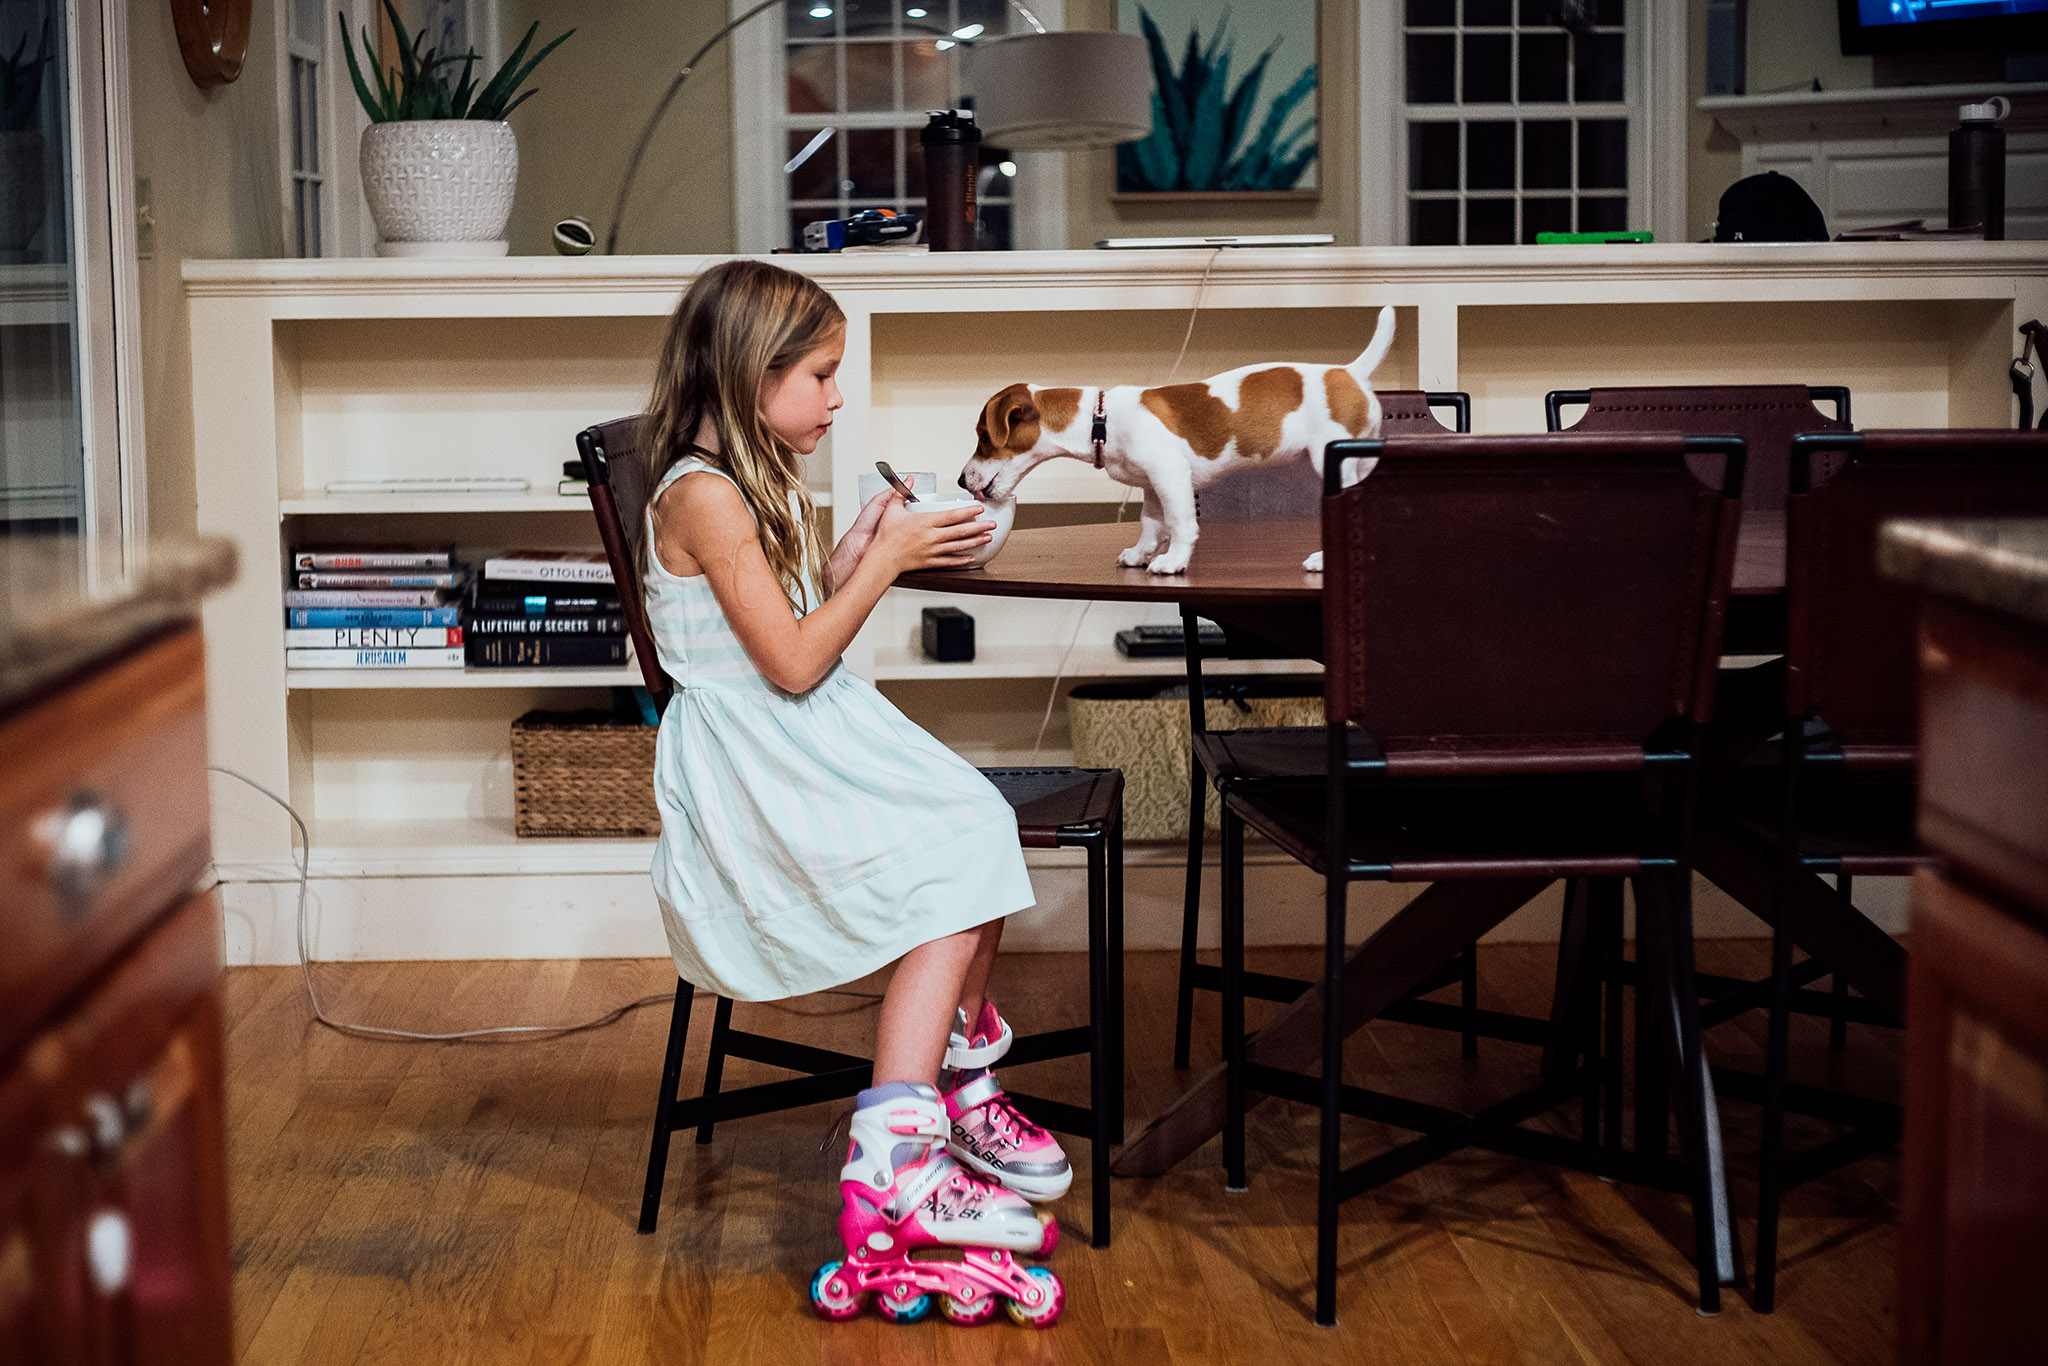 little girl wearing pink rollerblades sitting at the table sharing a bowl of soup with a small dog standing on the table